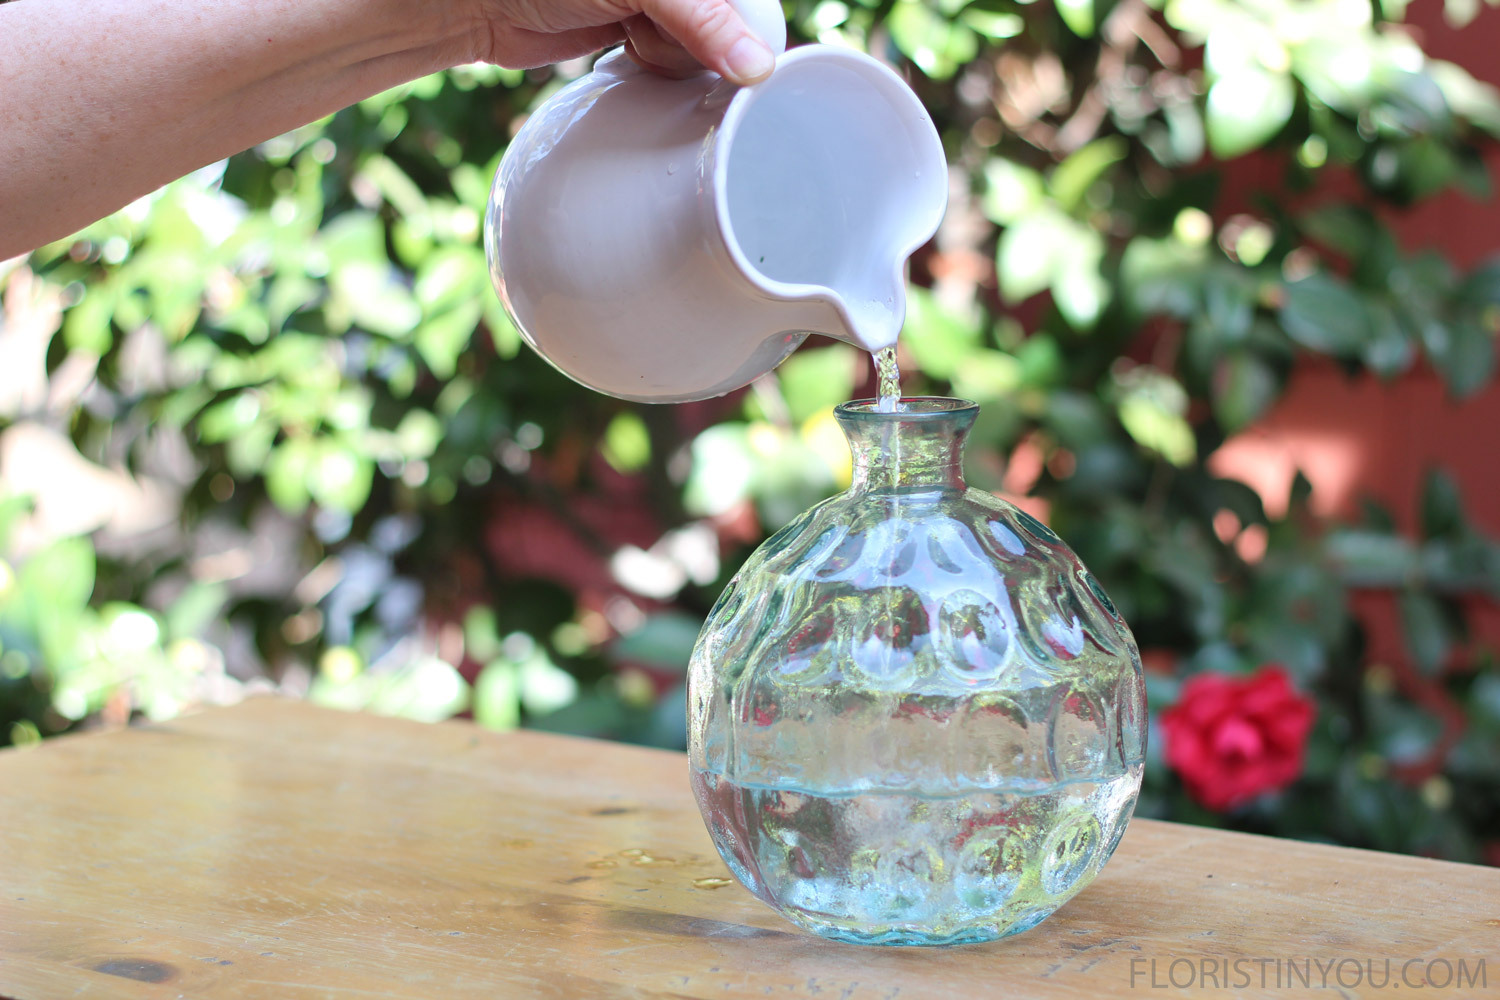 Fill your vase with water.